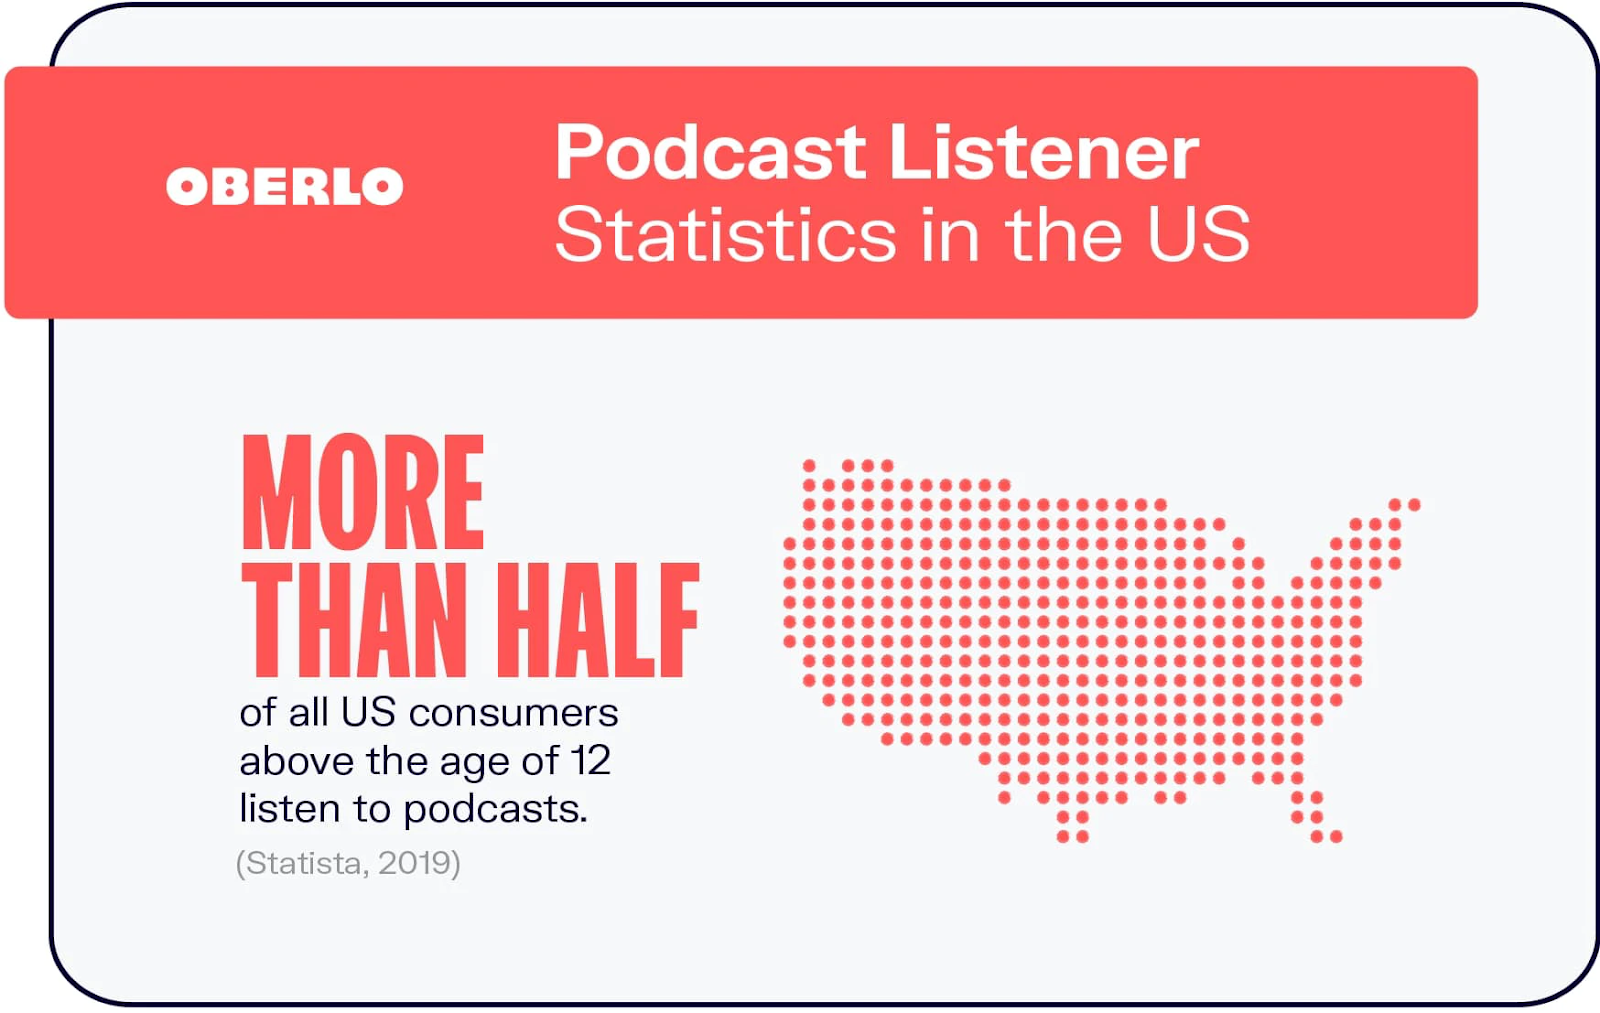 More than half of all US consumers (above age 12) listen to podcast episodes.